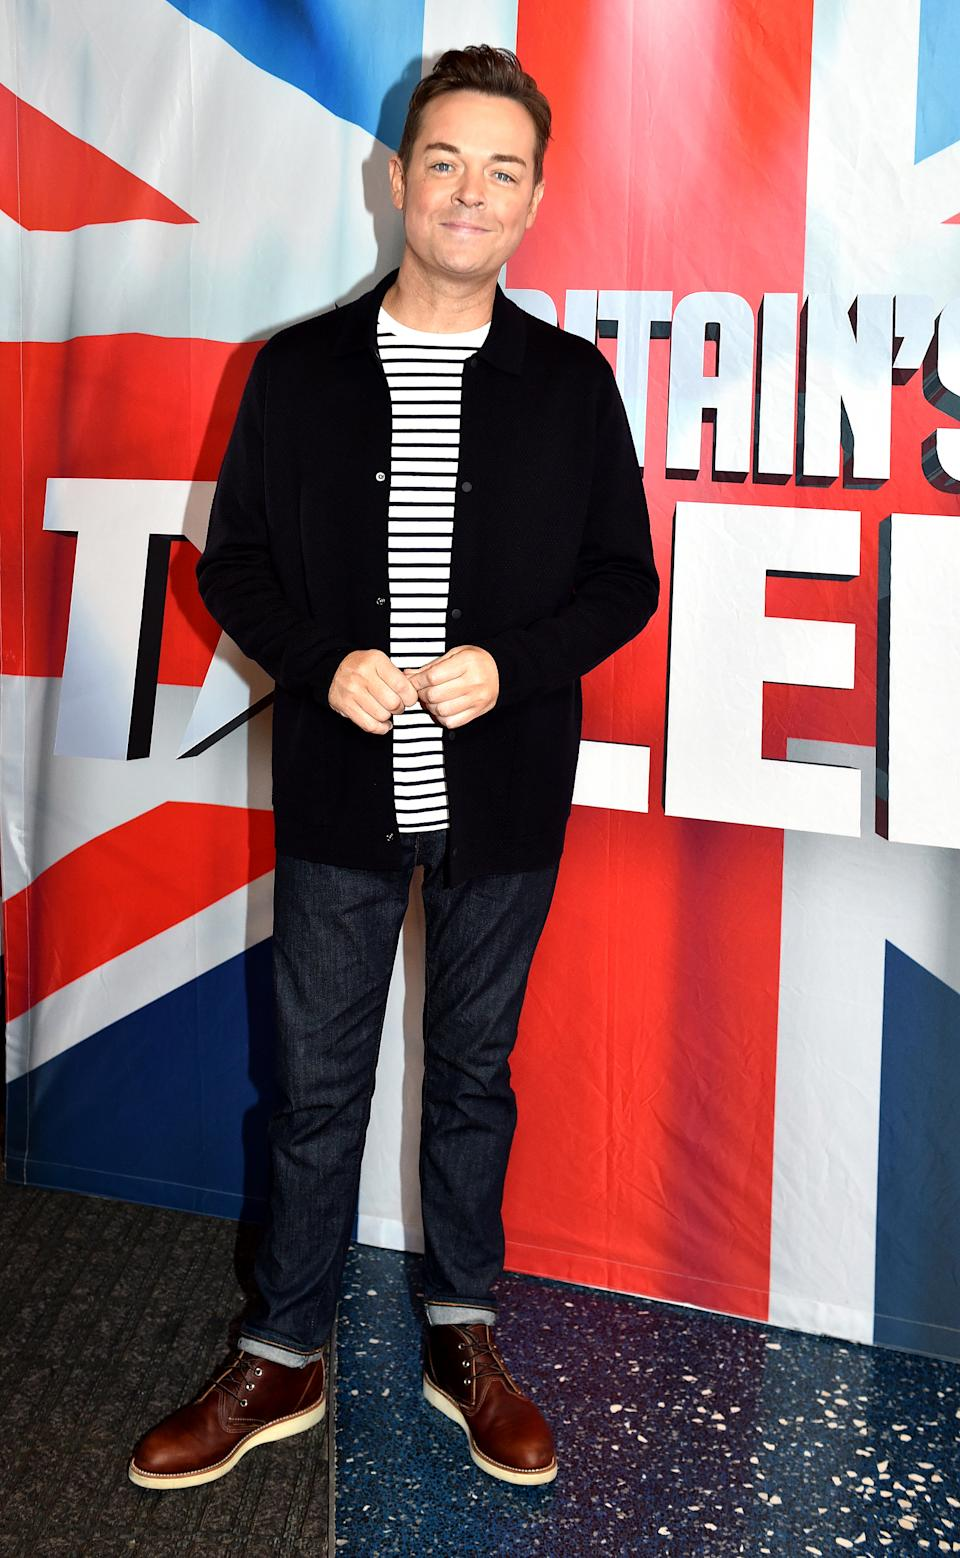 Stephen Mulhern during the 'Britain's Got Talent' Manchester photocall at The Lowry on February 06, 2019 in Manchester, England. (Photo by Shirlaine Forrest/Getty Images)